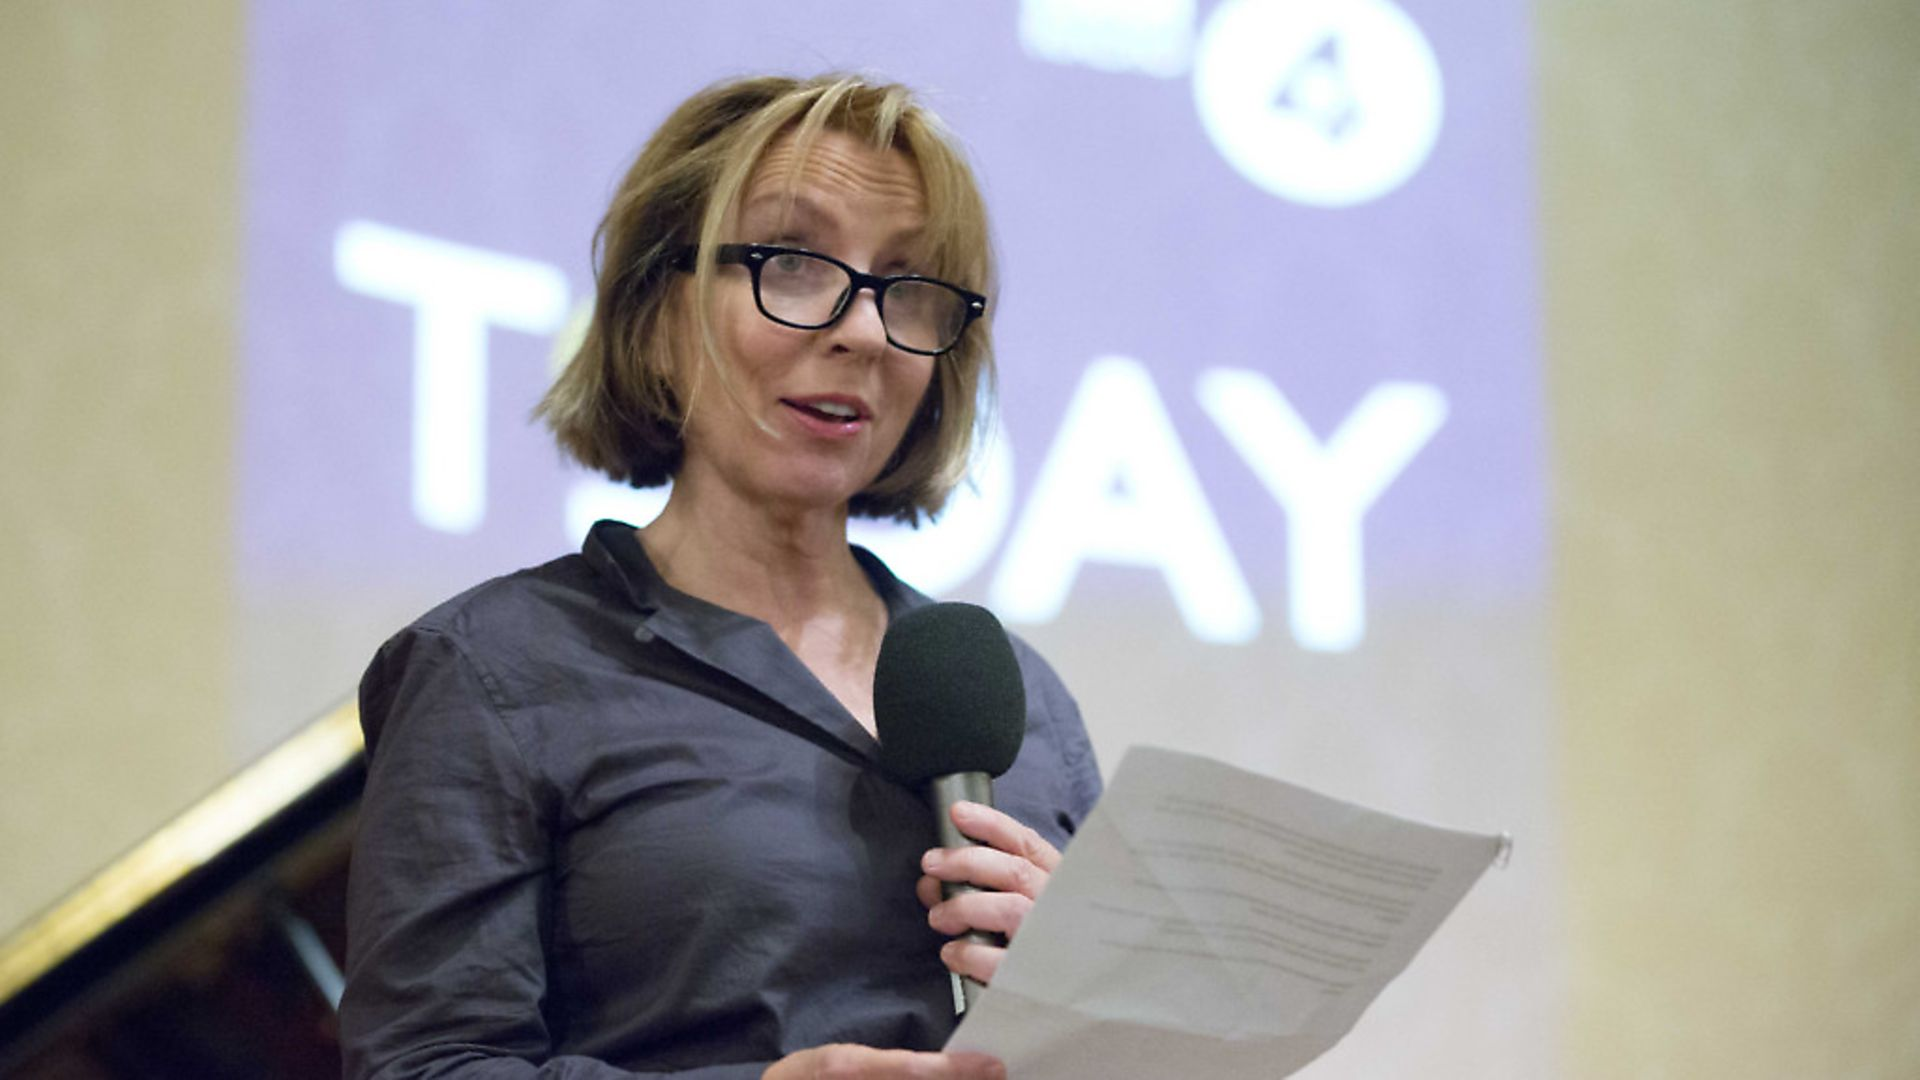 Editor of BBC Radio 4's Today programme Sarah Sands speaks to a live audience at Wigmore Hall. Picture: PA - Credit: PA Archive/PA Images